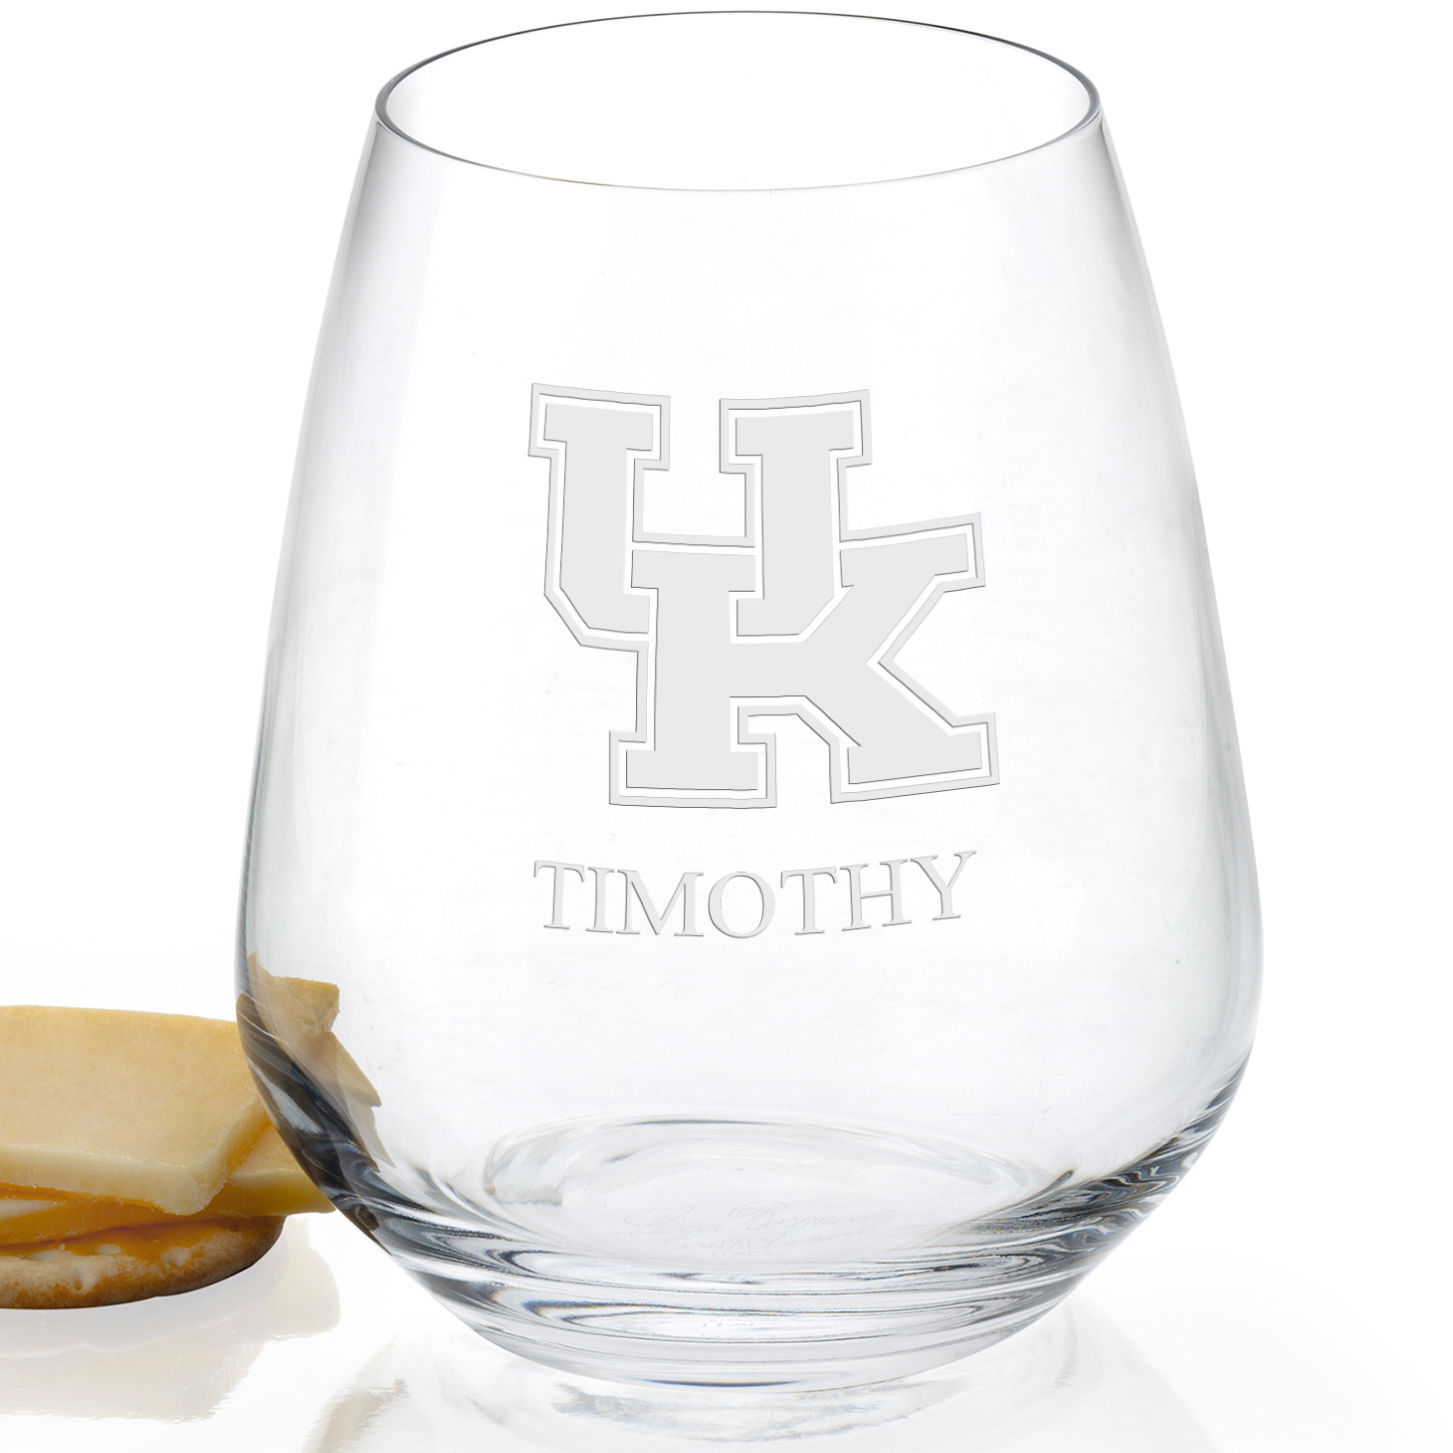 University of Kentucky Stemless Wine Glasses - Set of 2 - Image 2